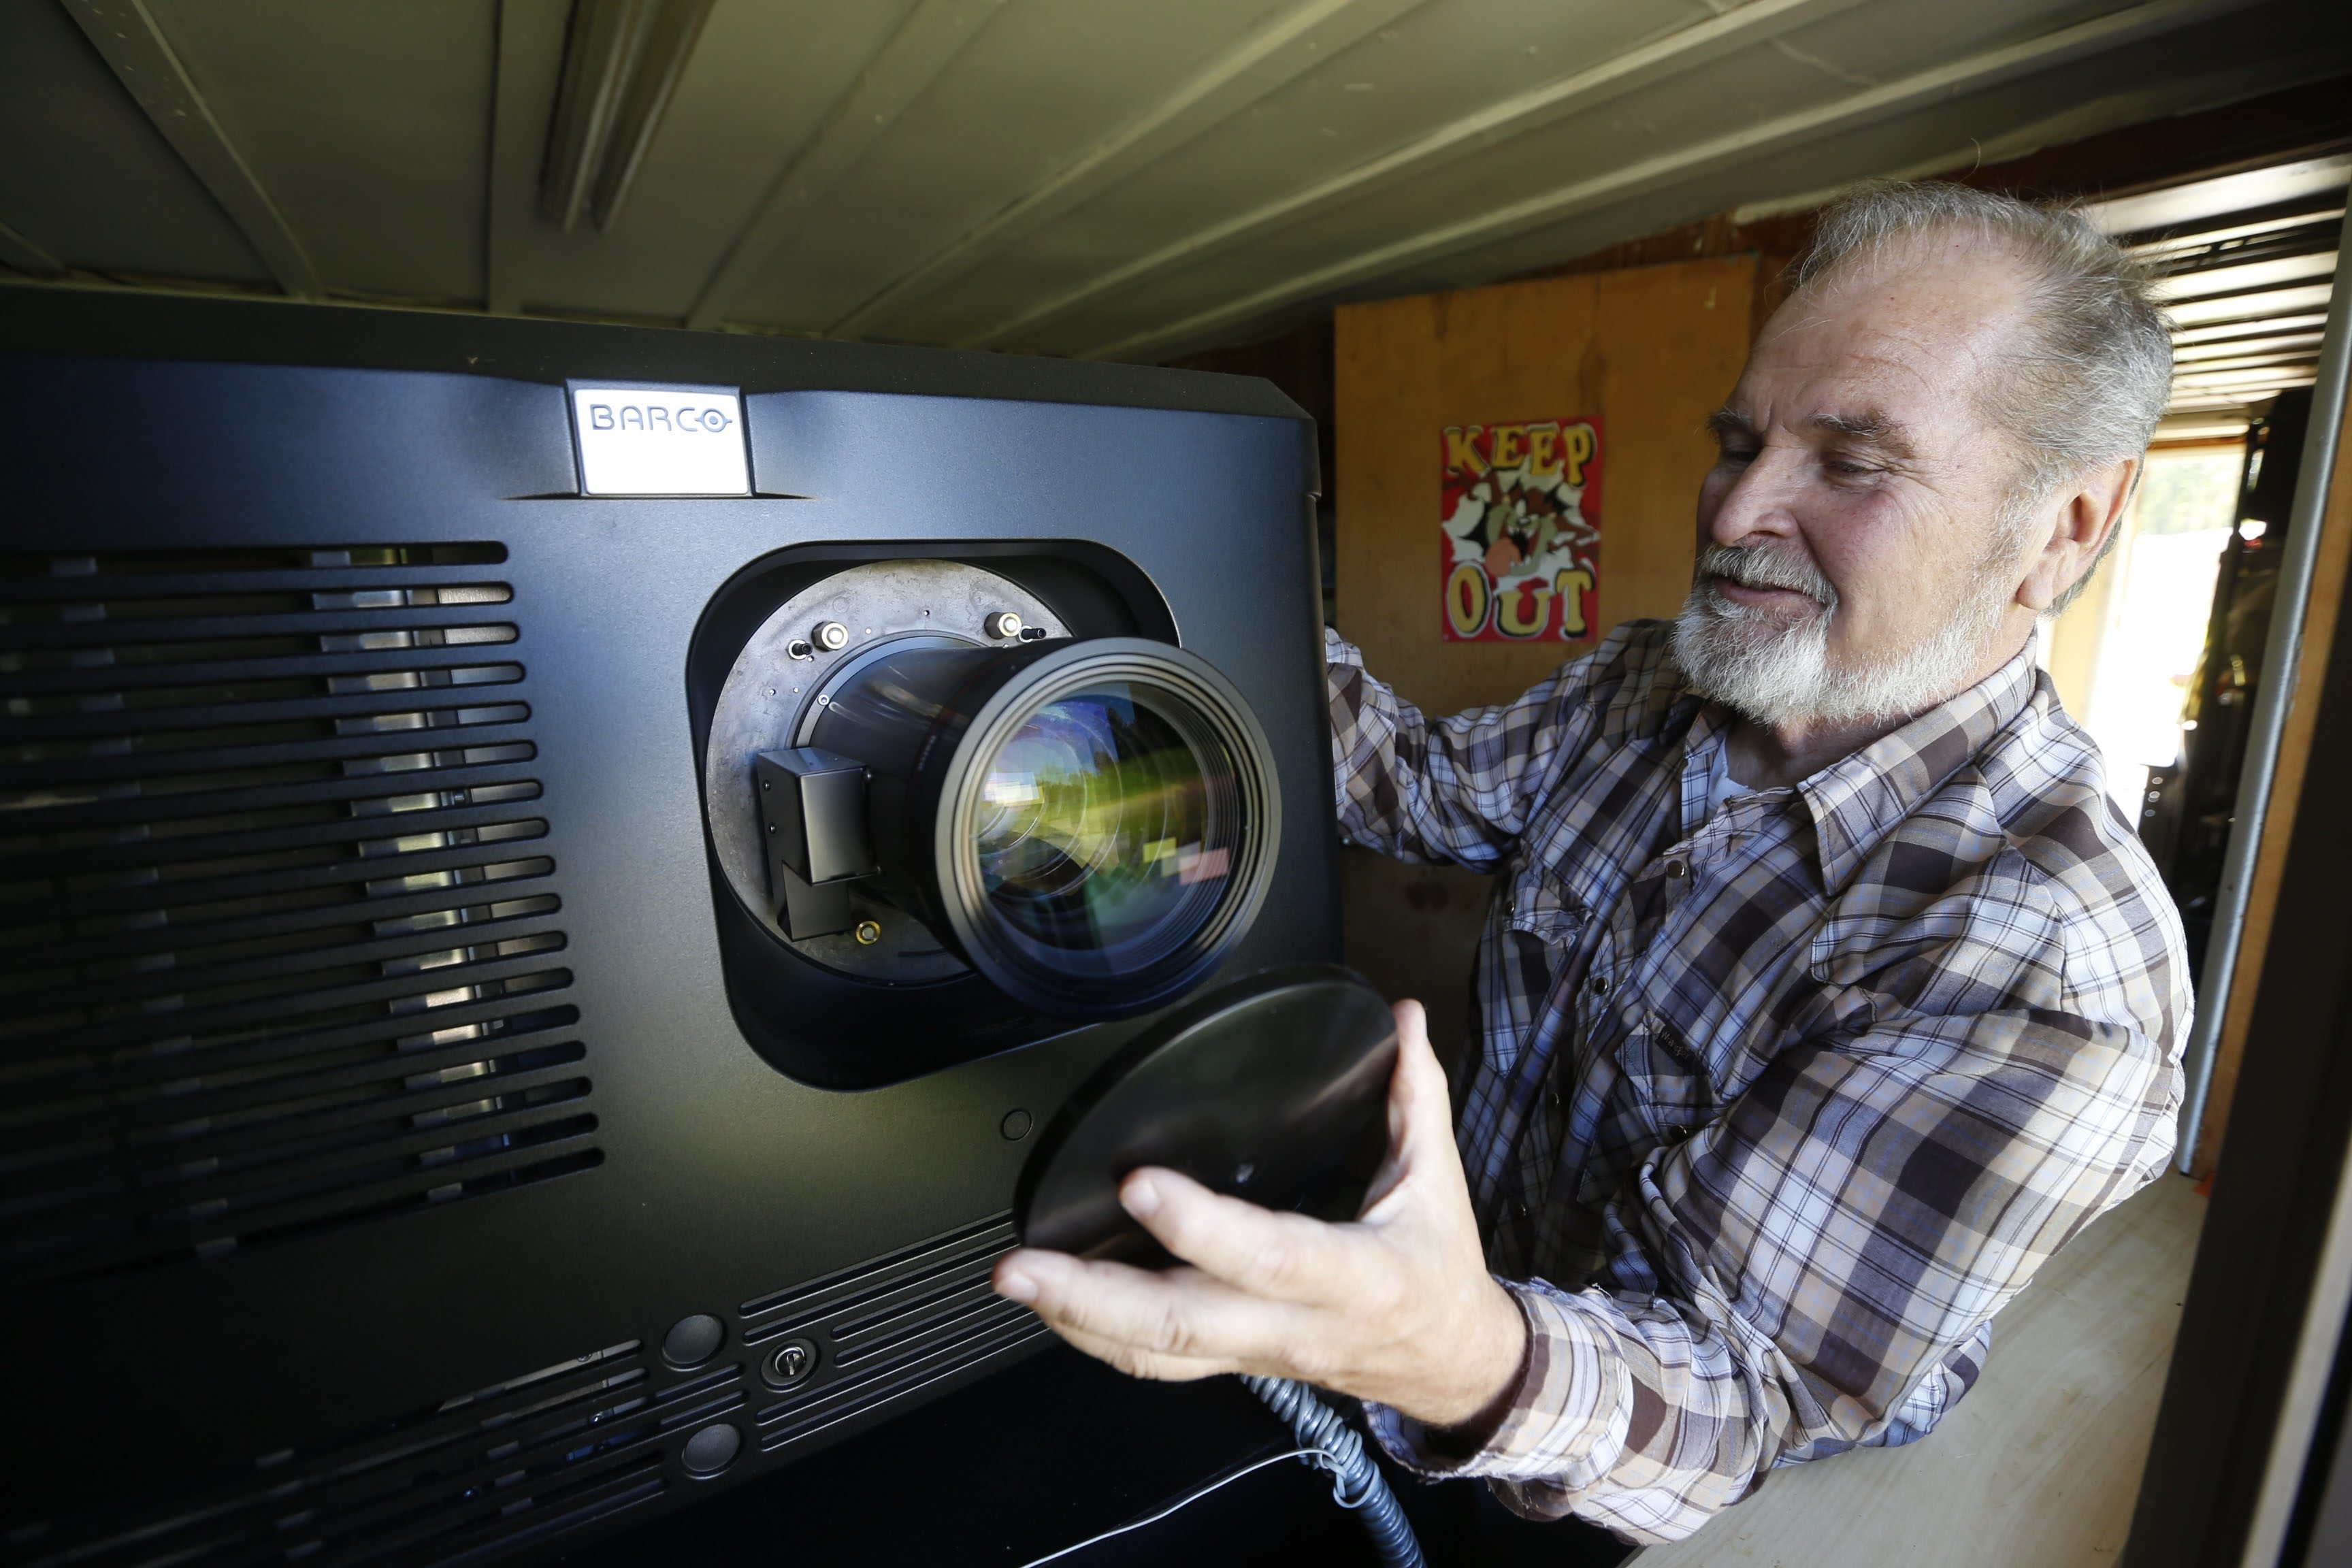 A News file photo shows Don Loomis adjusting his new $68,000 digital projector last fall at the Loomis Delevan Drive-In, which now has a new owner, Dr. Michael DiBella who has renamed it the Twin Delevan Drive-In.  (Robert Kirkham/Buffalo News)